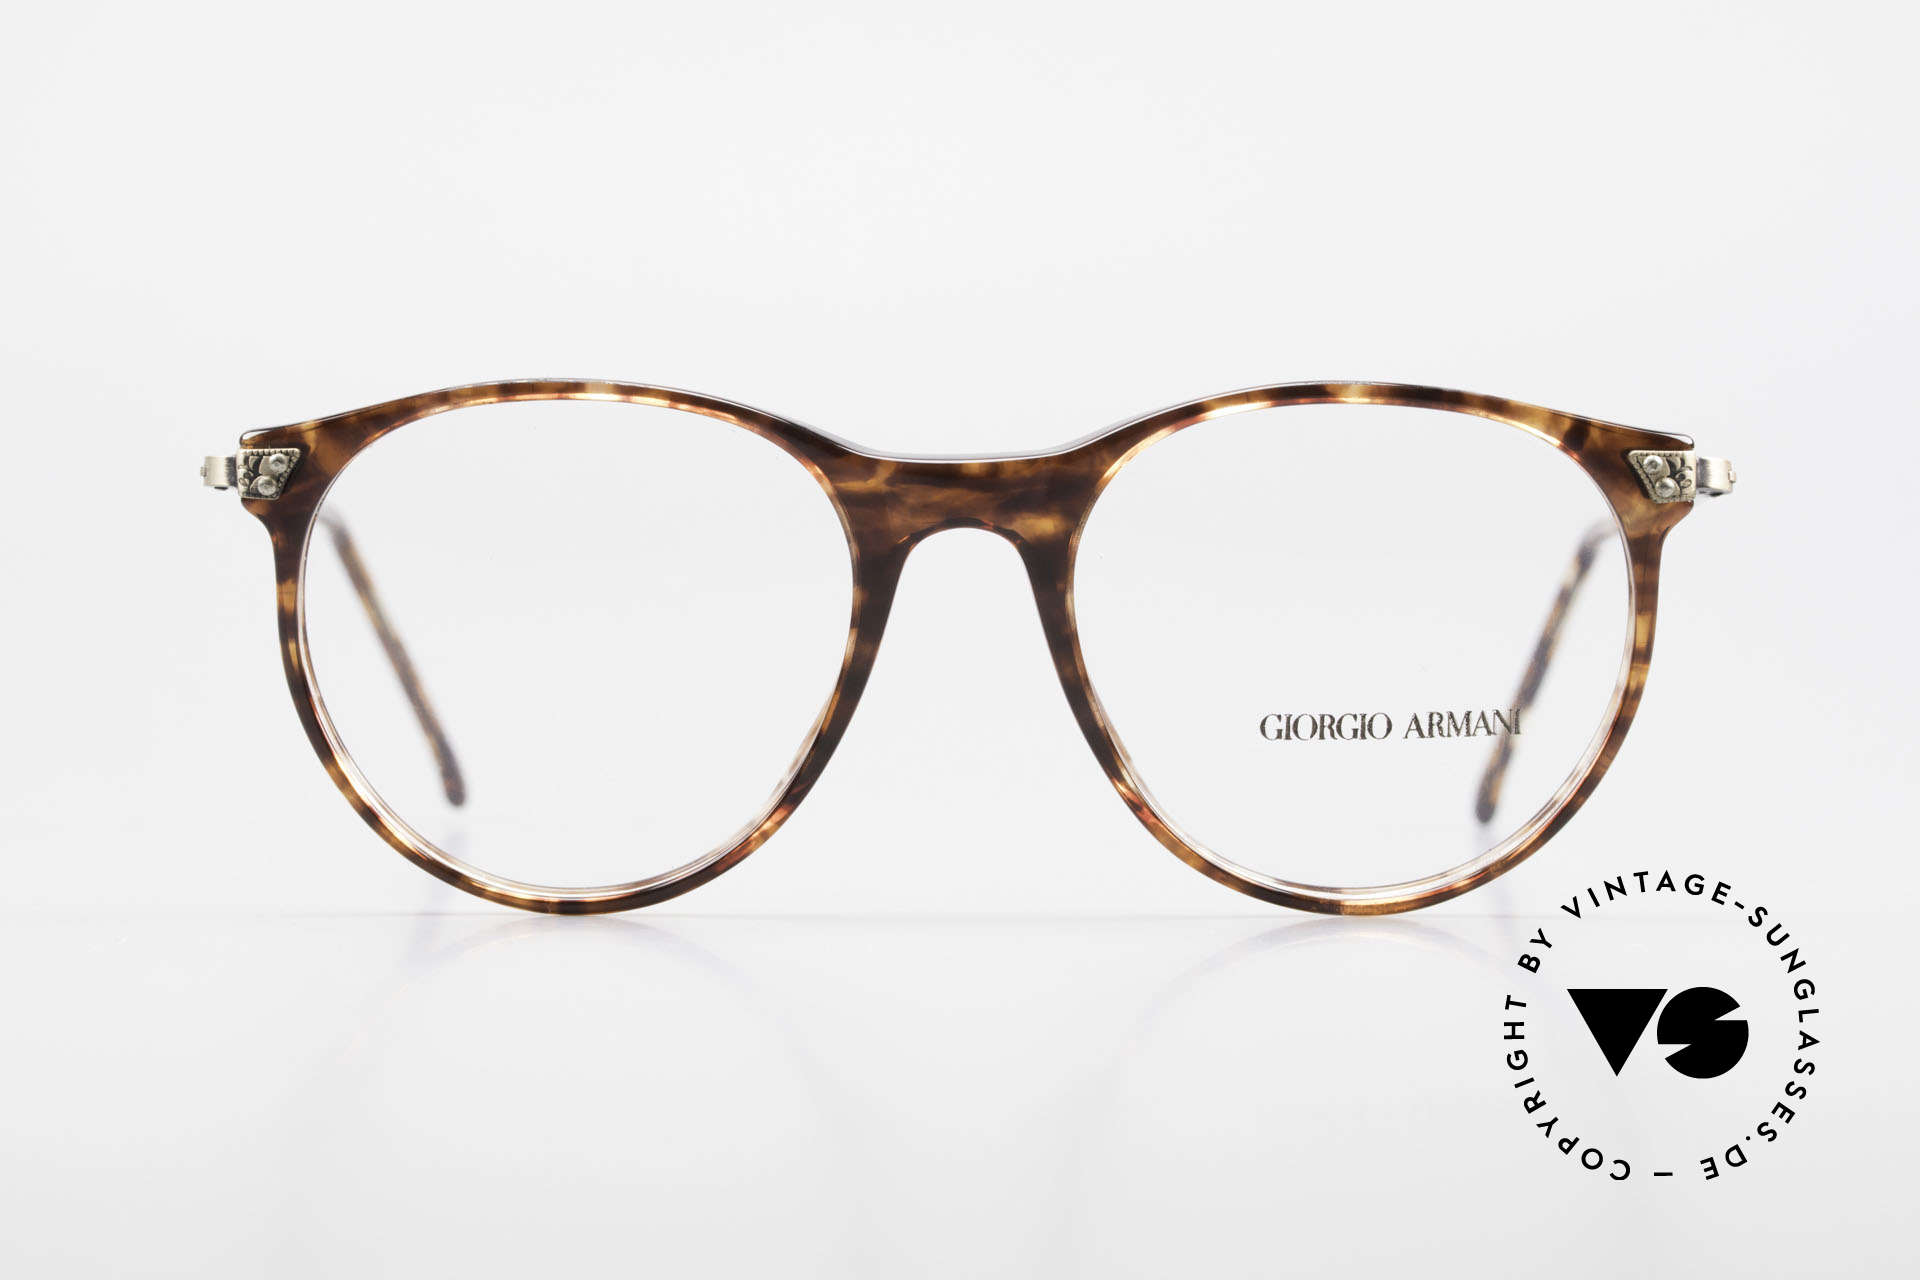 Giorgio Armani 330 True Vintage Unisex Glasses, classic, timeless, elegant = characteristic of GA, Made for Men and Women